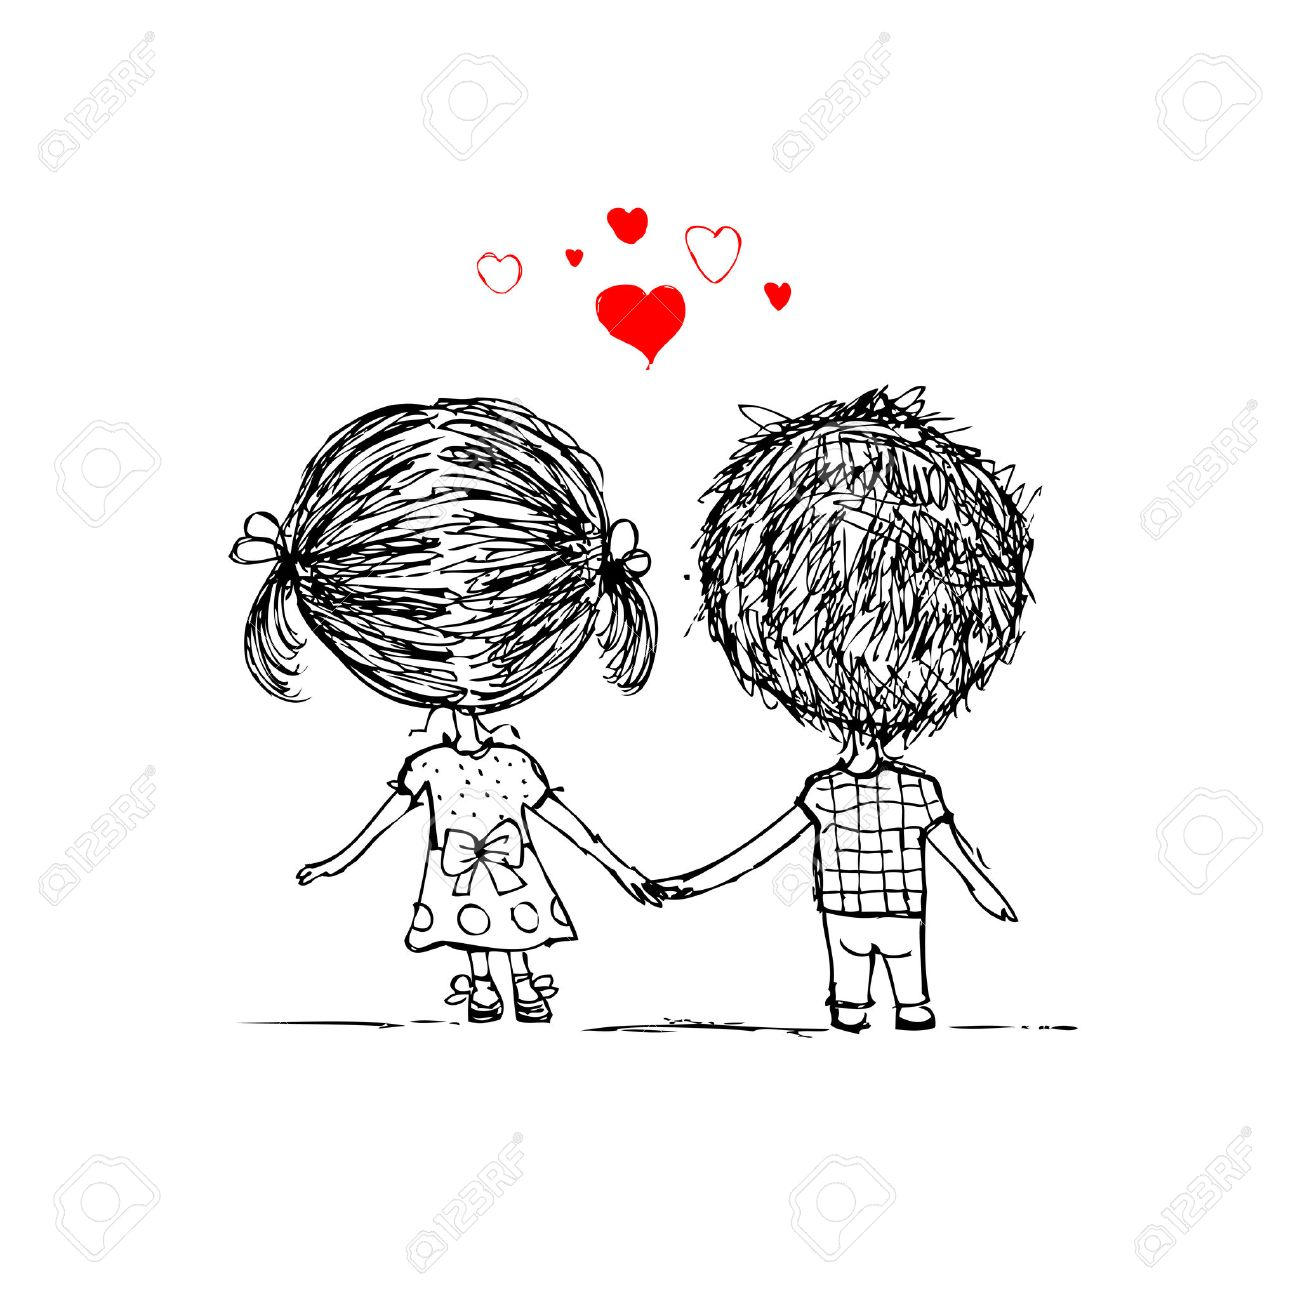 Couple in love together, valentine sketch for your design Stock Vector - 29253617